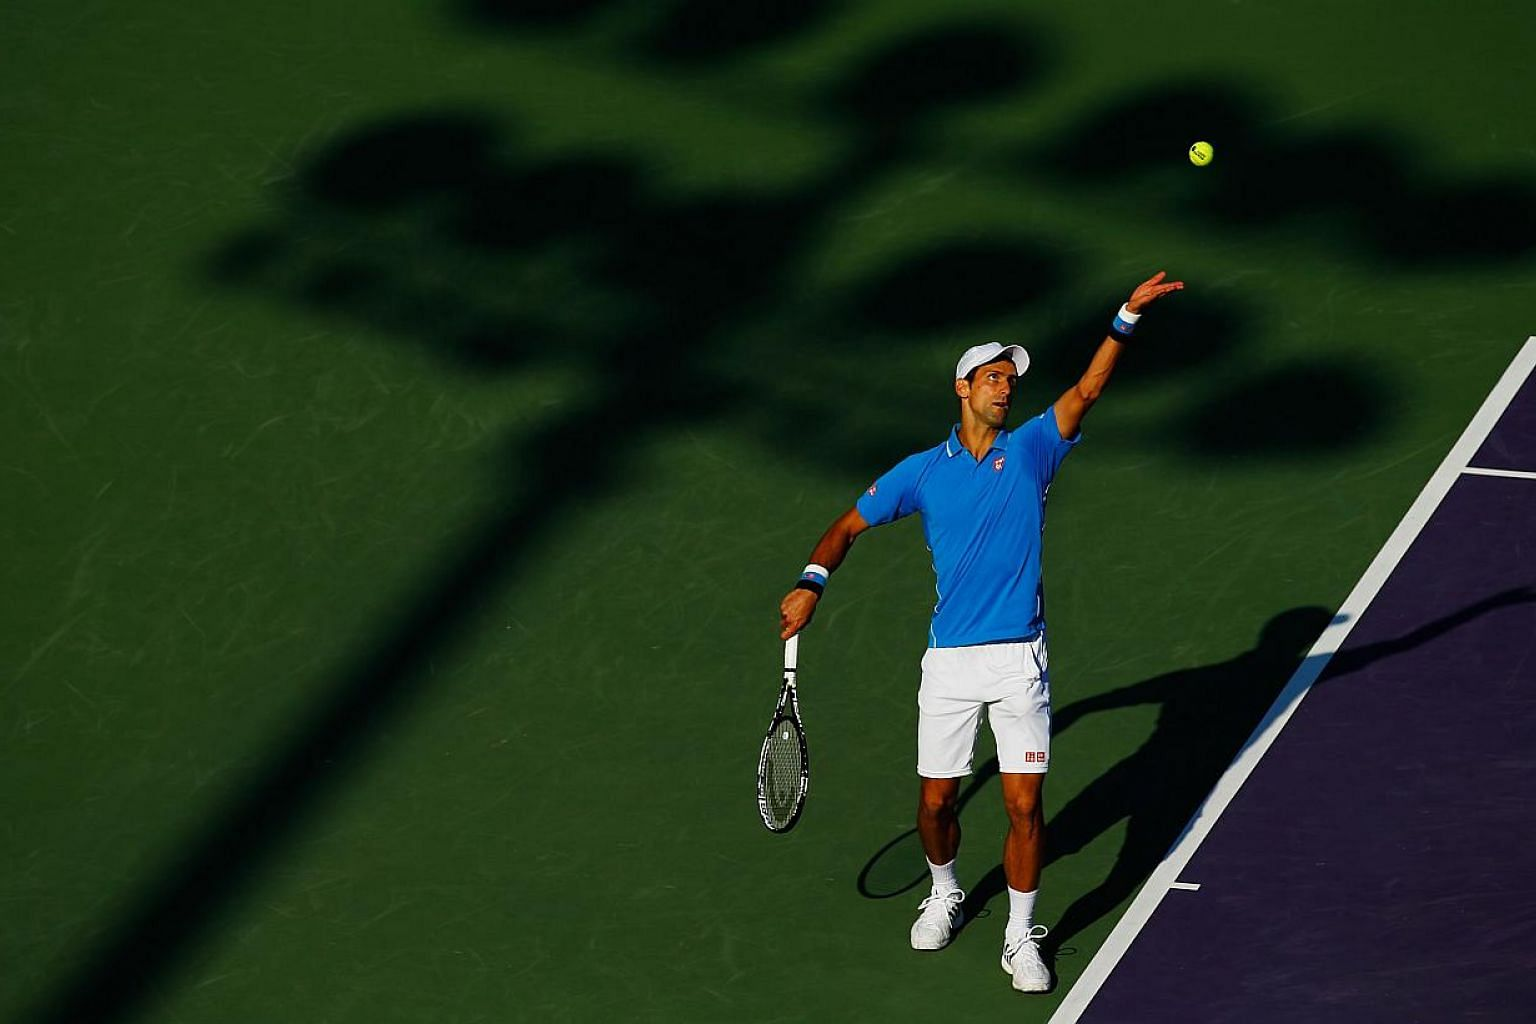 Novak Djokovic serving against Alexandr Dolgopolov during day 9 of the Miami Open at Crandon Park Tennis Center on March 31, 2015, in Key Biscayne, Florida. -- PHOTO: AFP